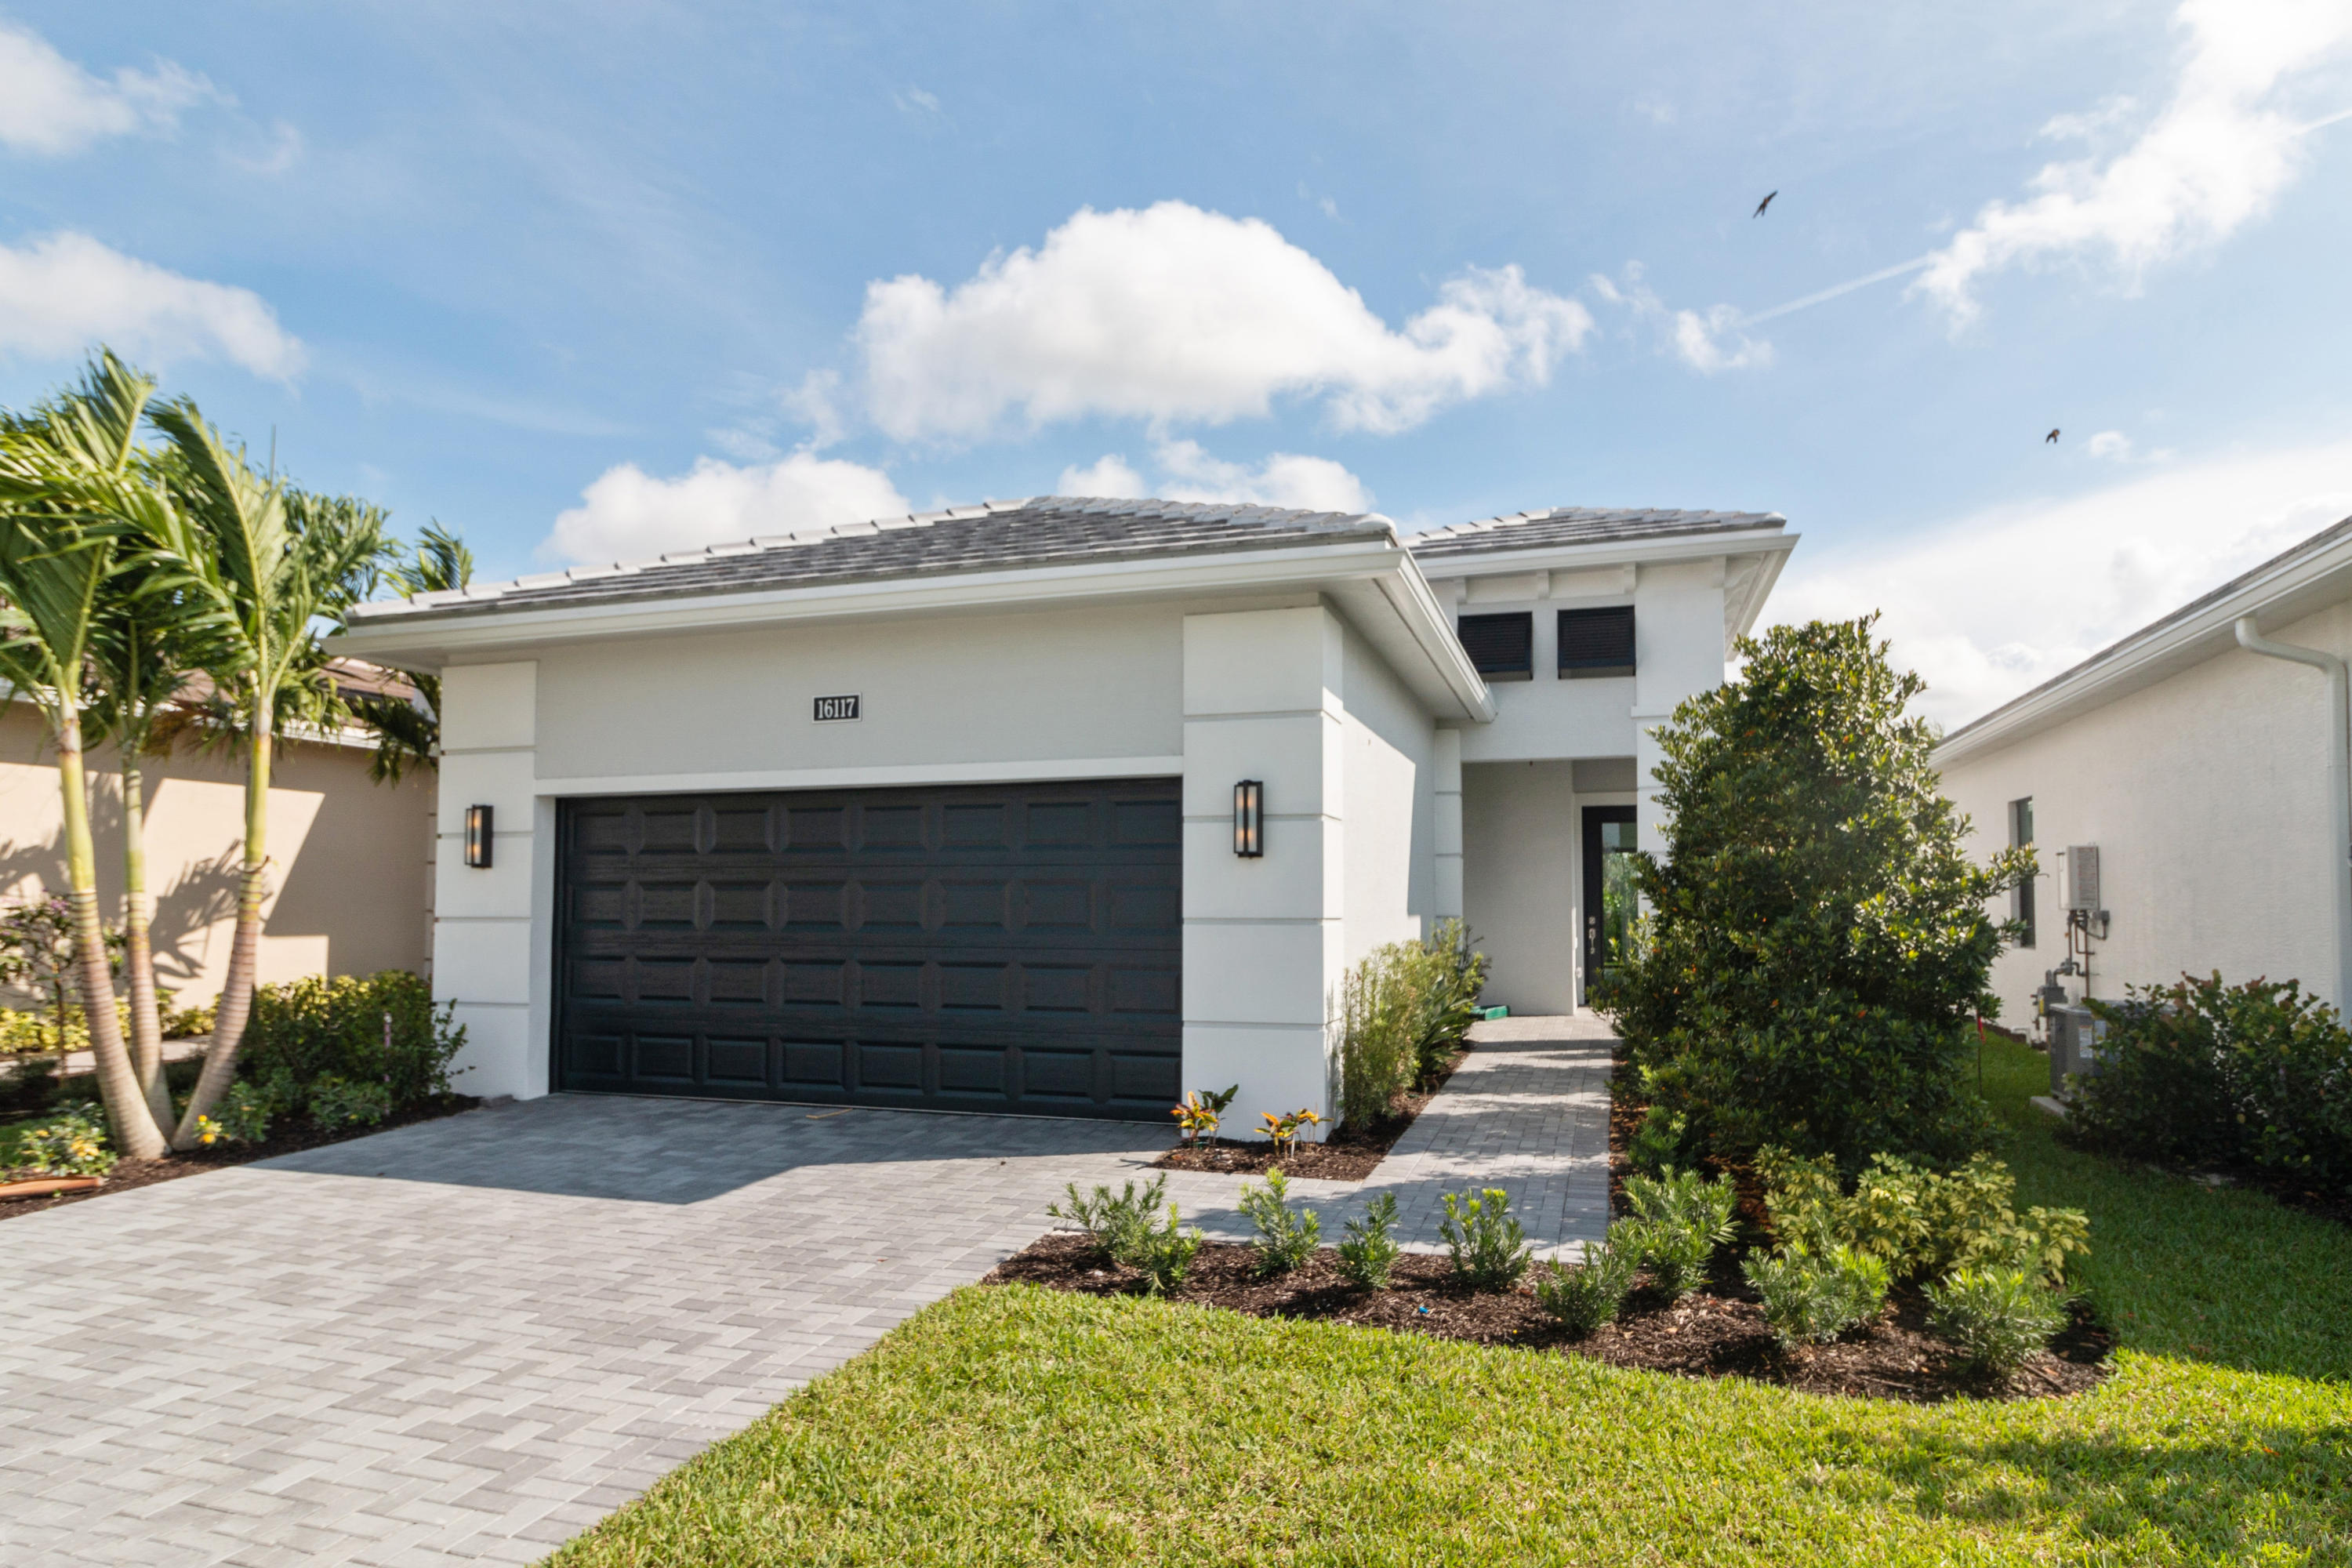 Home for sale in Cresswind Palm Beach Westlake Florida